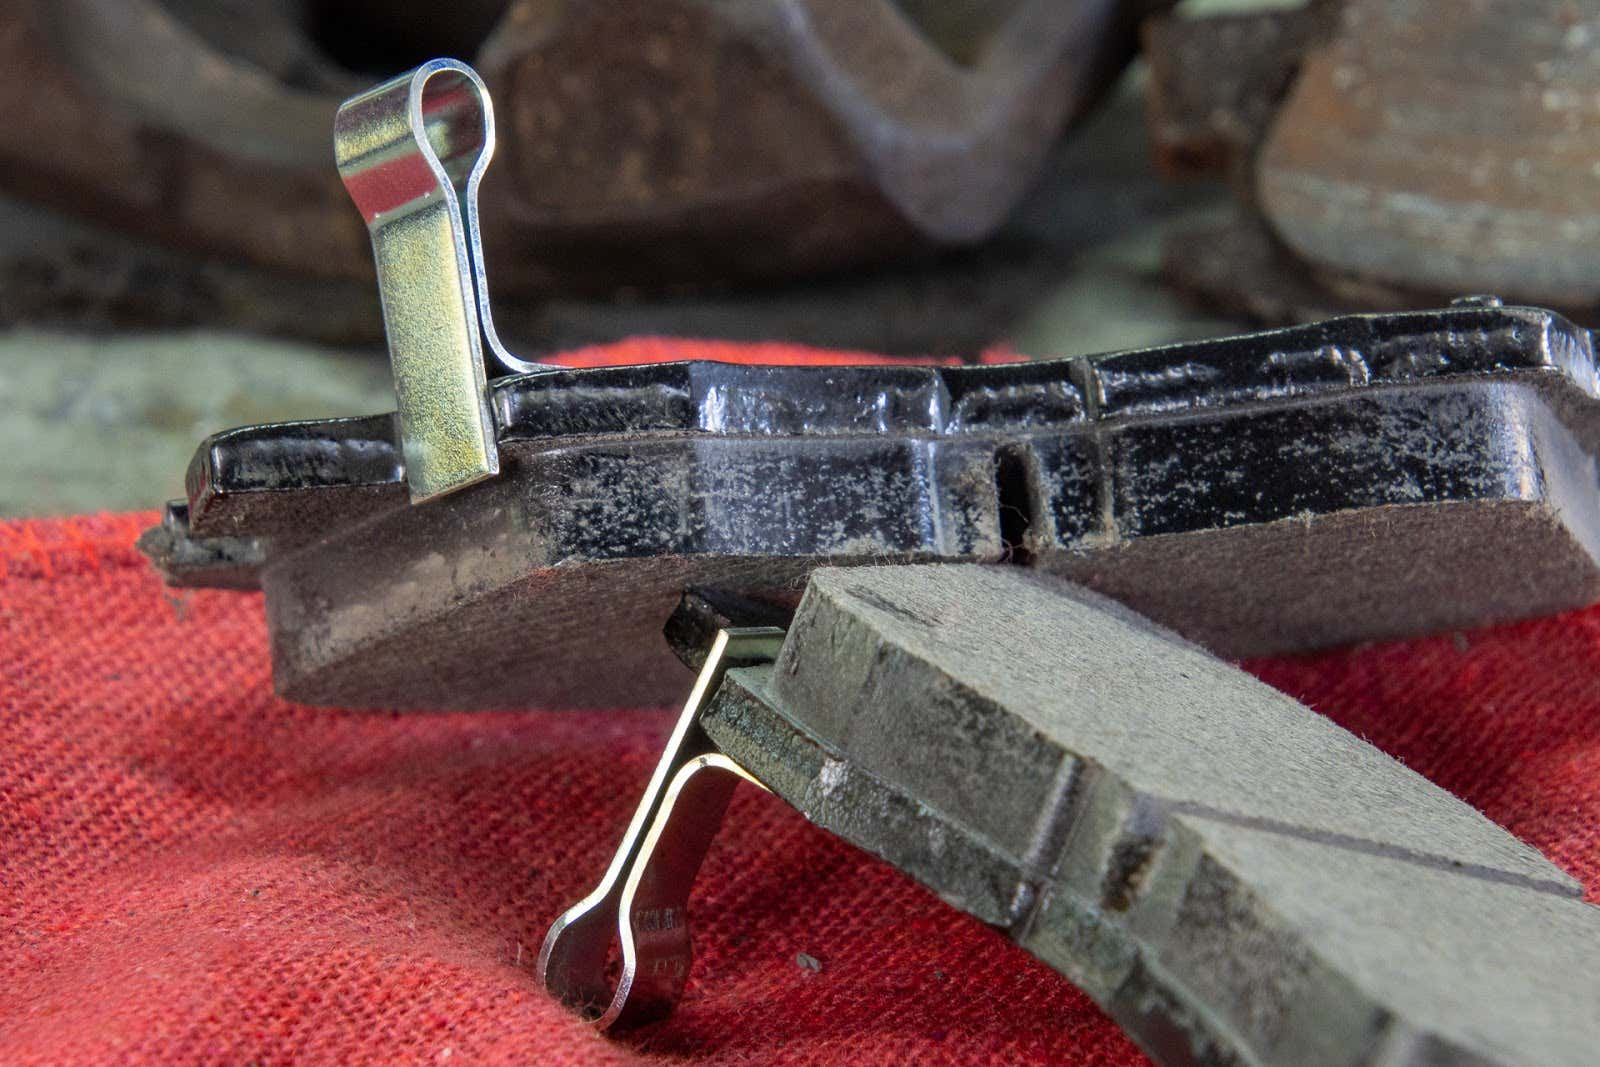 Hands-On Review: Best Brake Pads for Performance and Safety